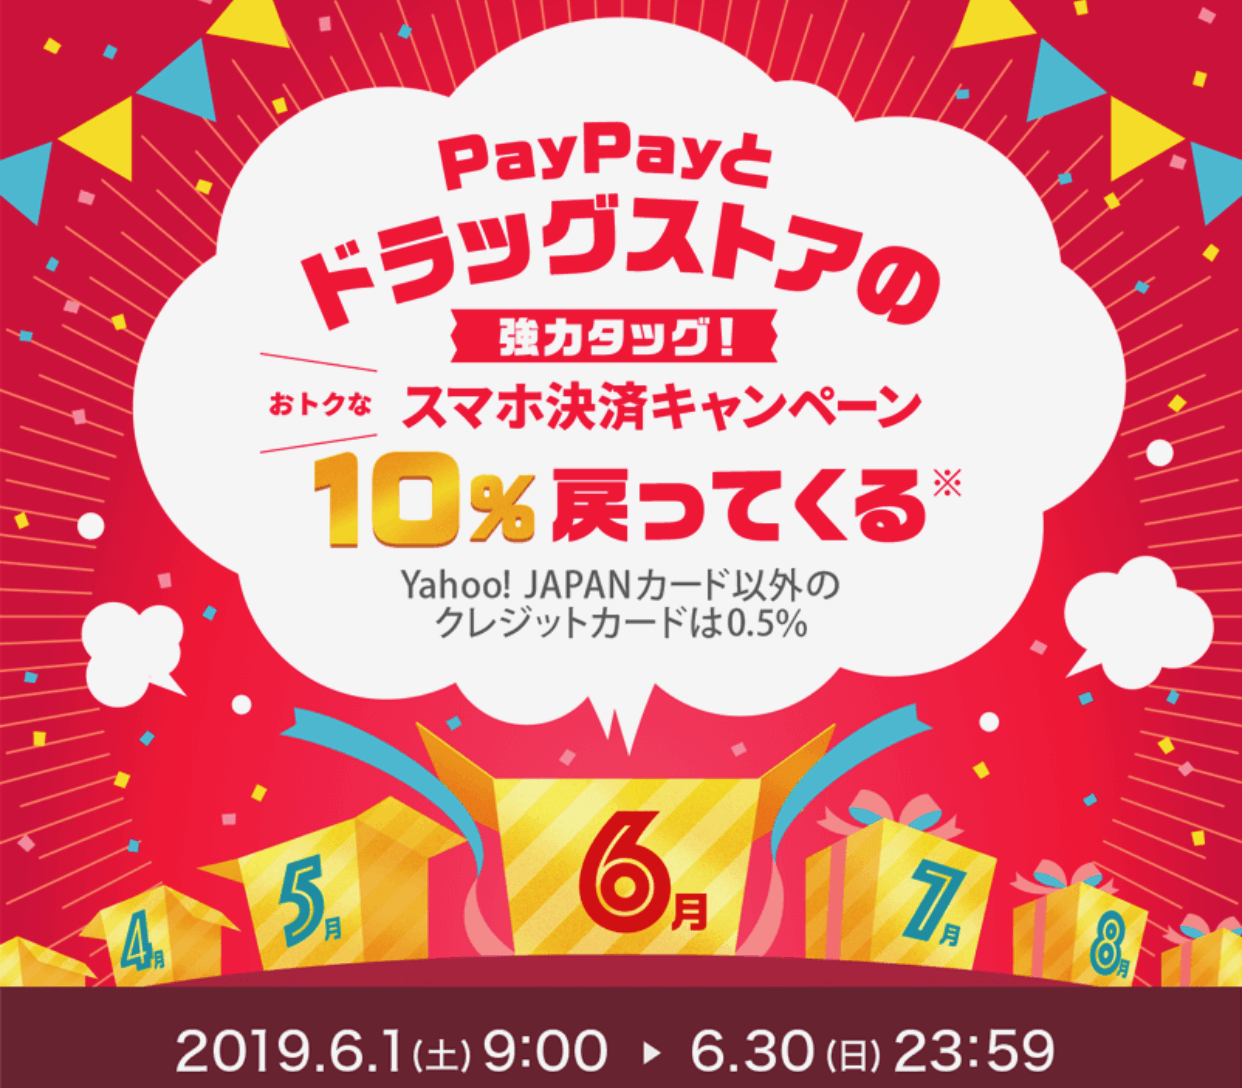 PayPay 6gatsudragstore 05